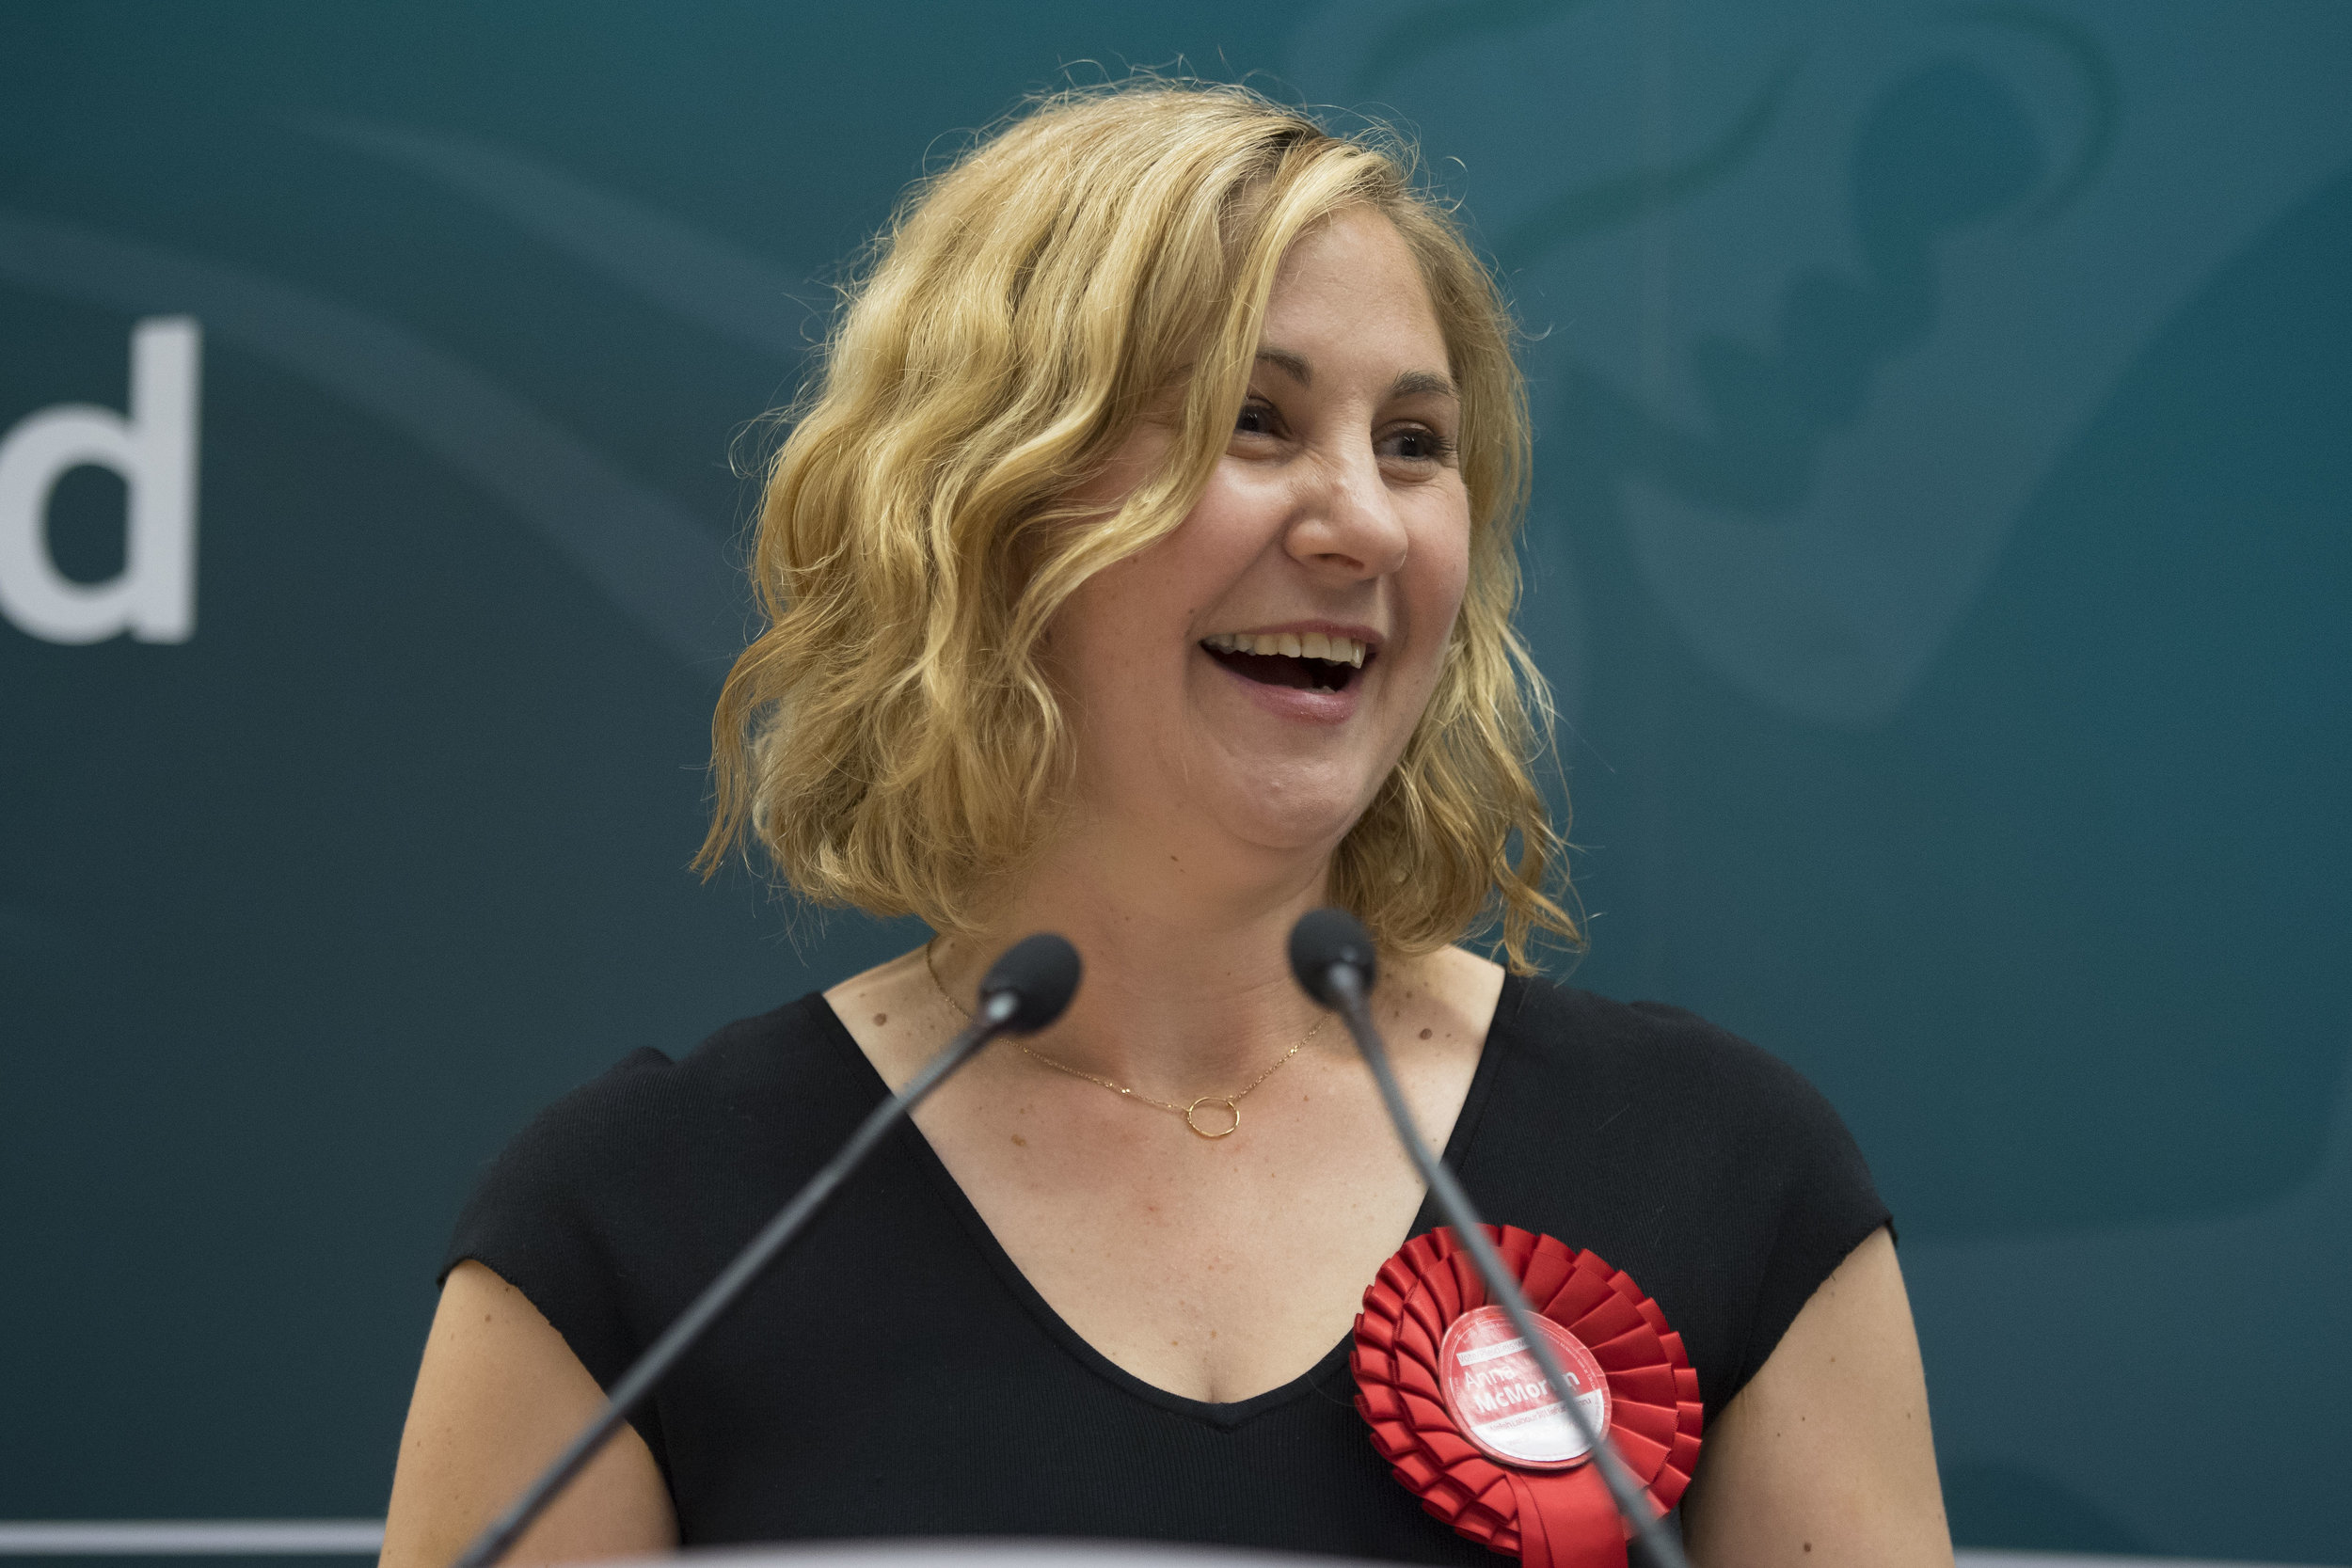 CARDIFF, UNITED KINGDOM - JUNE 09: Anna McMorrin speaks after winning Cardiff North for Labour at the Sport Wales National Centre on June 9, 2017 in Cardiff, United Kingdom. After a snap election was called, the United Kingdom went to the polls yesterday following a closely fought election. The results from across the country are being counted and an overall result is expected in the early hours. (Photo by Matthew Horwood/Getty Images)